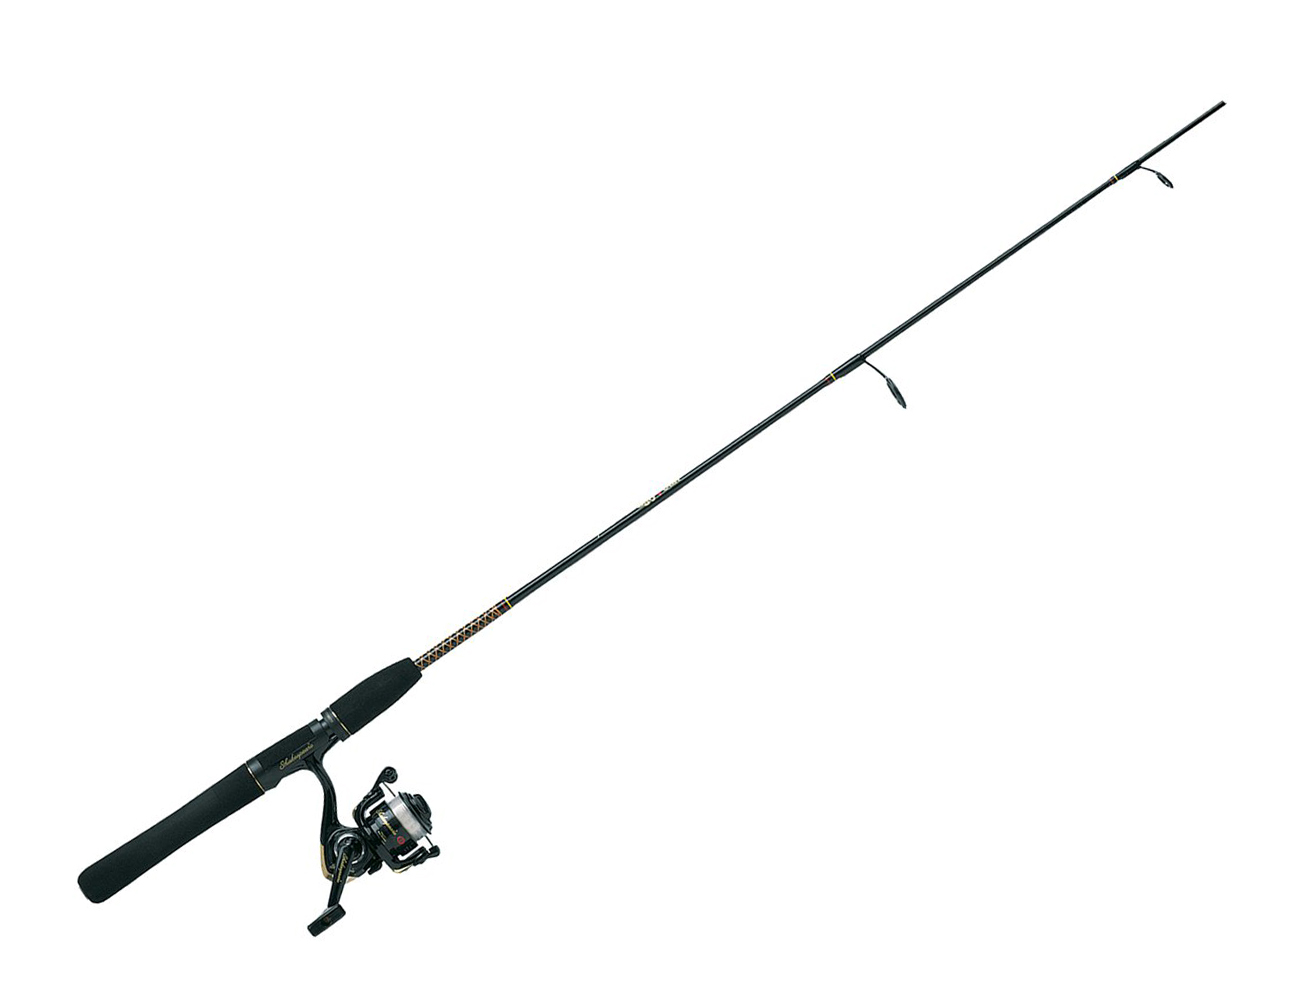 Lines clipart fishing pole Download fishing art 2 pole